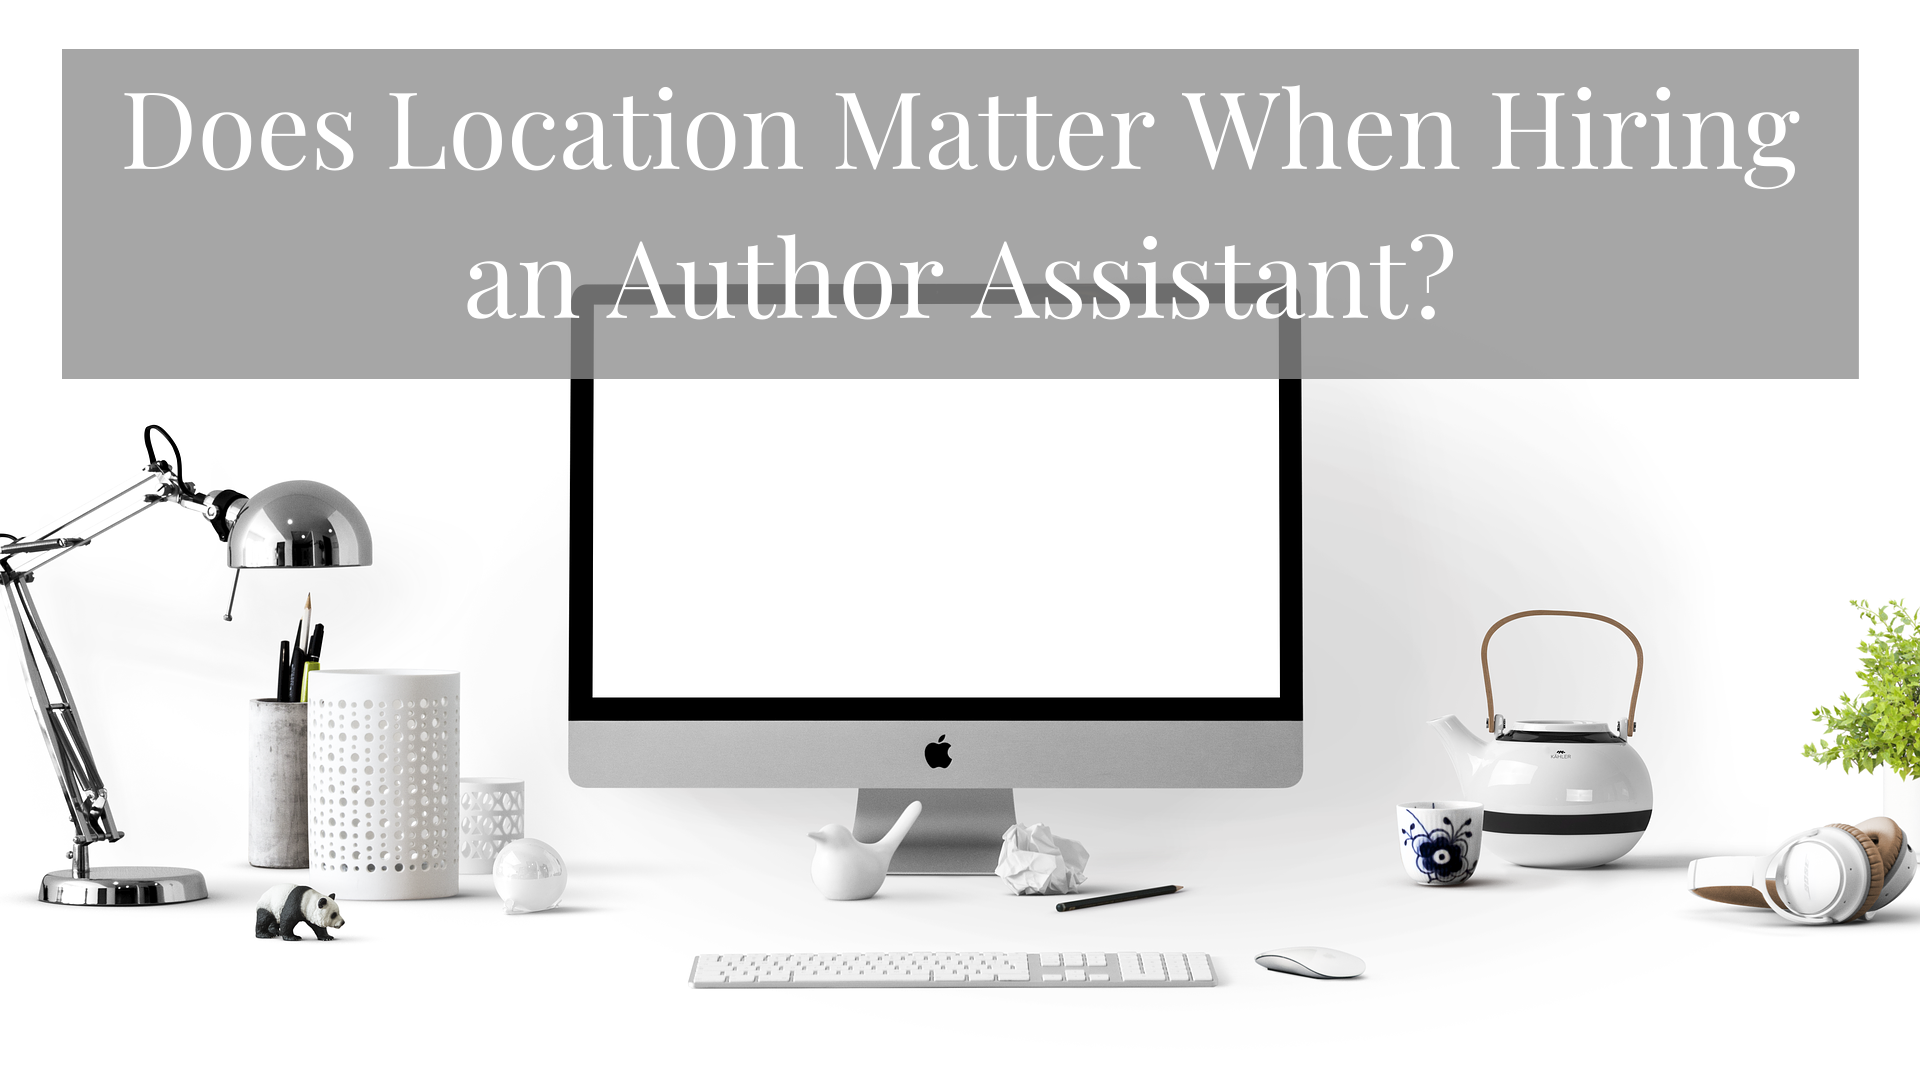 Does Location Matter When Hiring an Author Assistant?